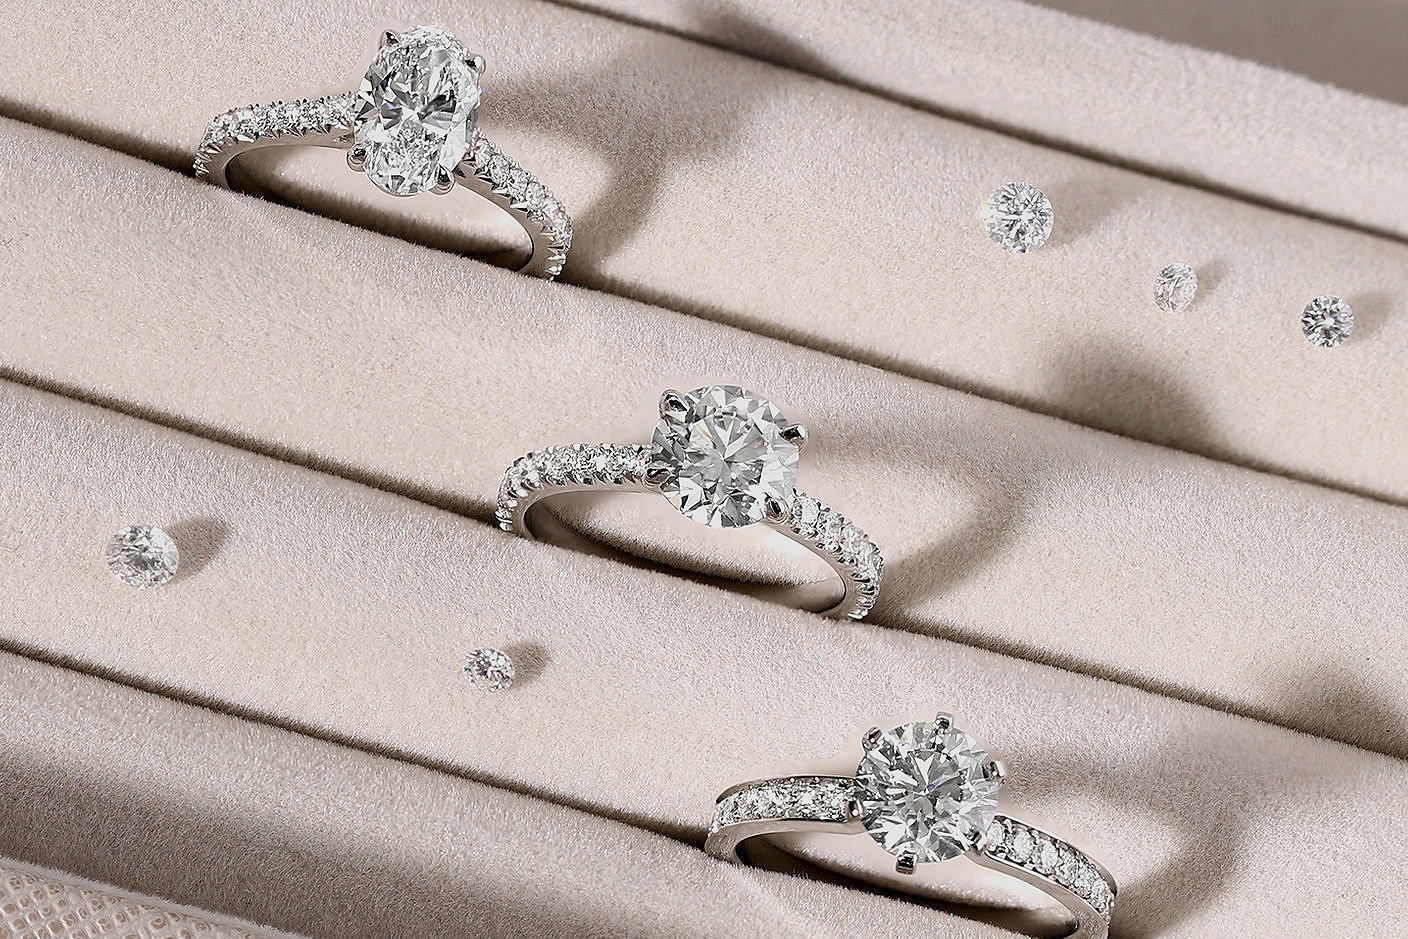 About our diamonds - We are proud suppliers of GIA certified diamonds. Graded by the world's most renowned, independent and not-for-profit grading laboratory, our diamonds are hand selected by our qualified gemmologists to suit each individual budget and personal requirements.Hatton Garden Diamonds